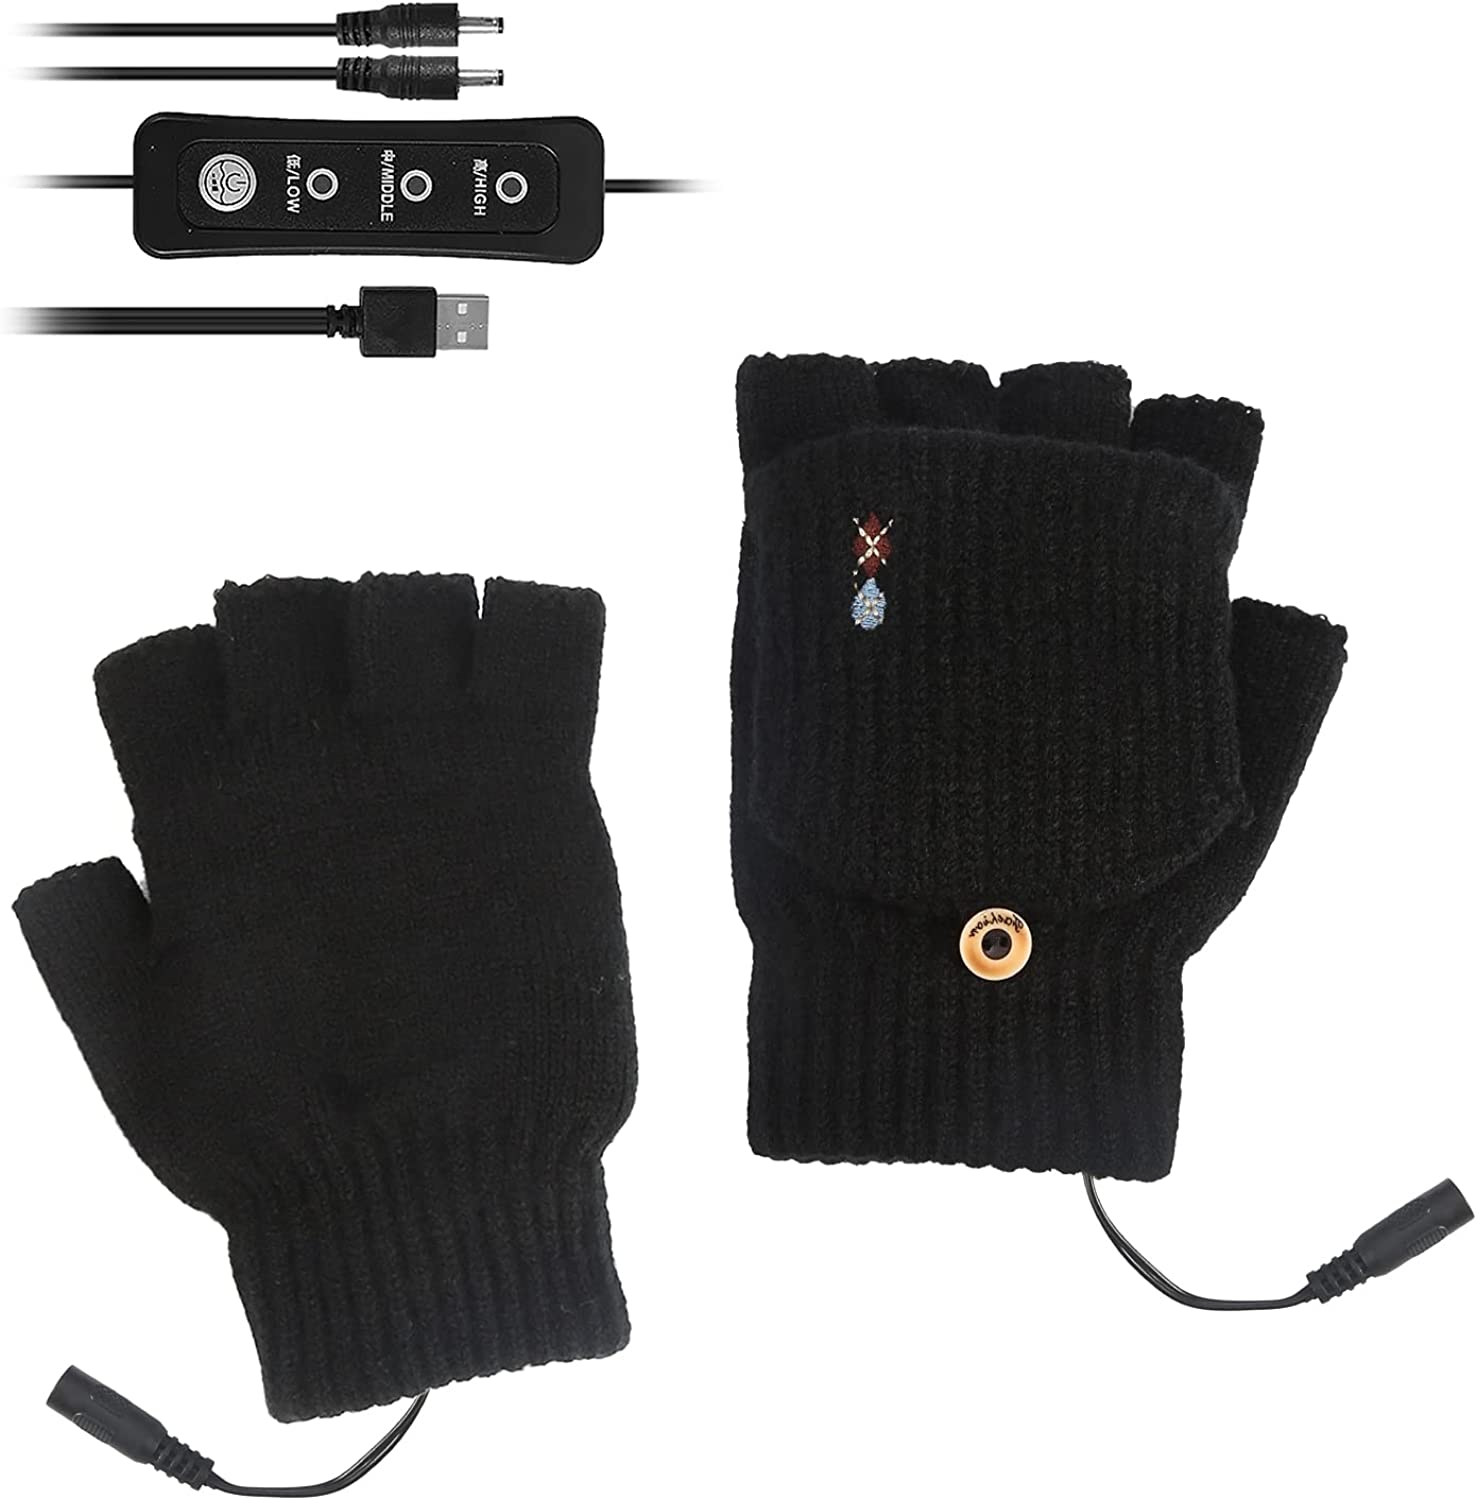 USB Heated Mittens, Winter Fingerless Knitted USB Electric Heated Gloves for Typing, Fishing, Biking, Hiking